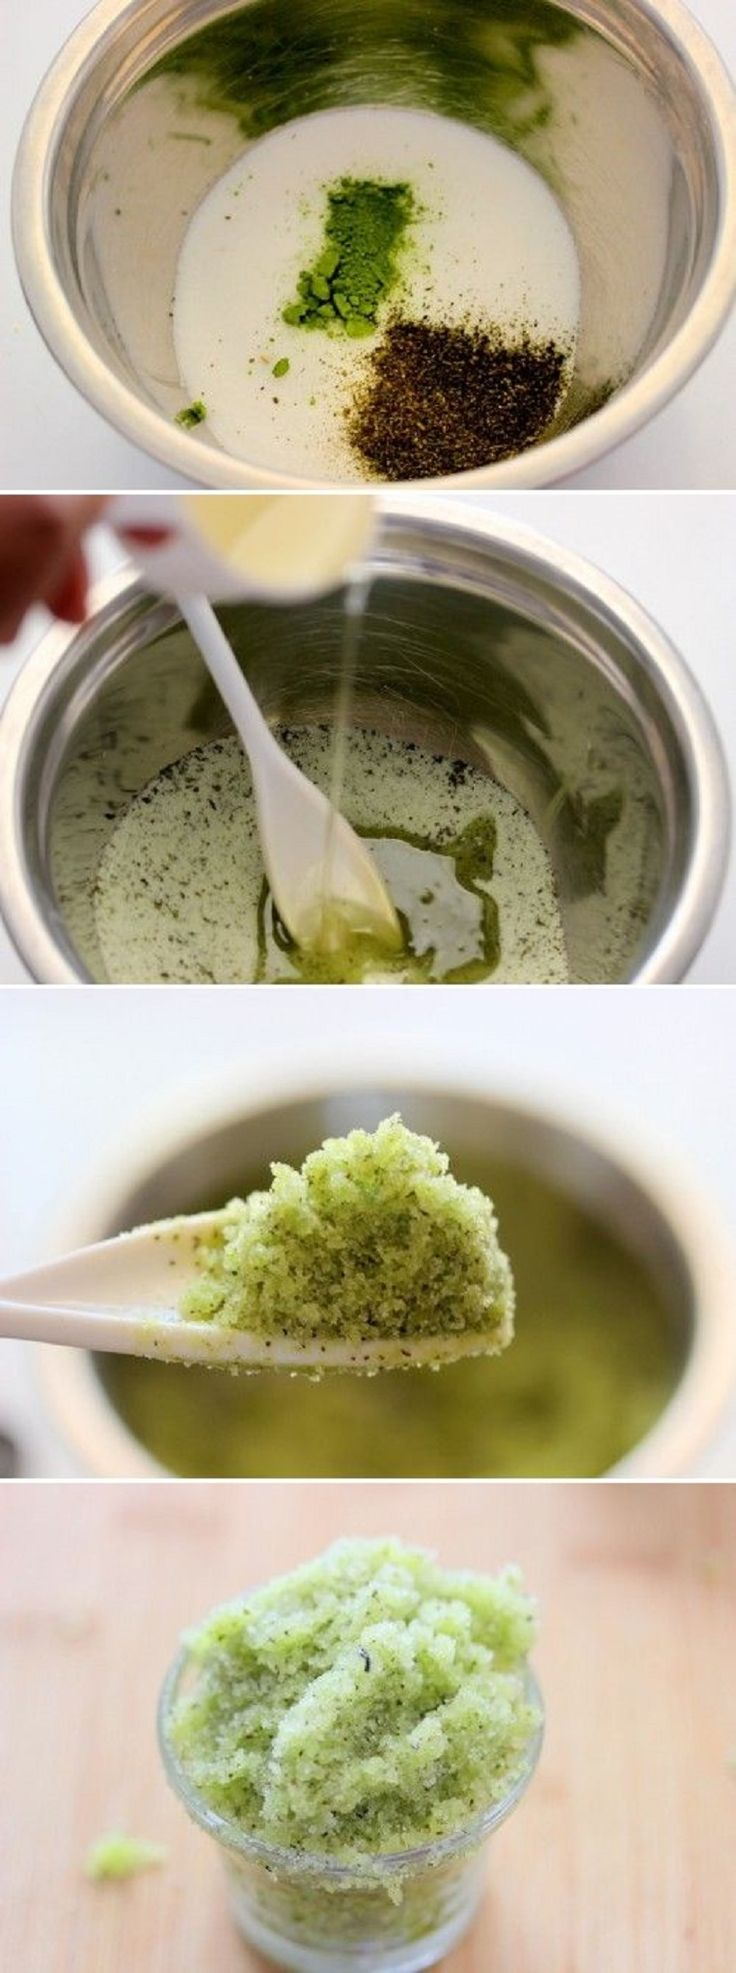 Green tea sugar scrub - 10 Homemade Green Tea Beauty Products